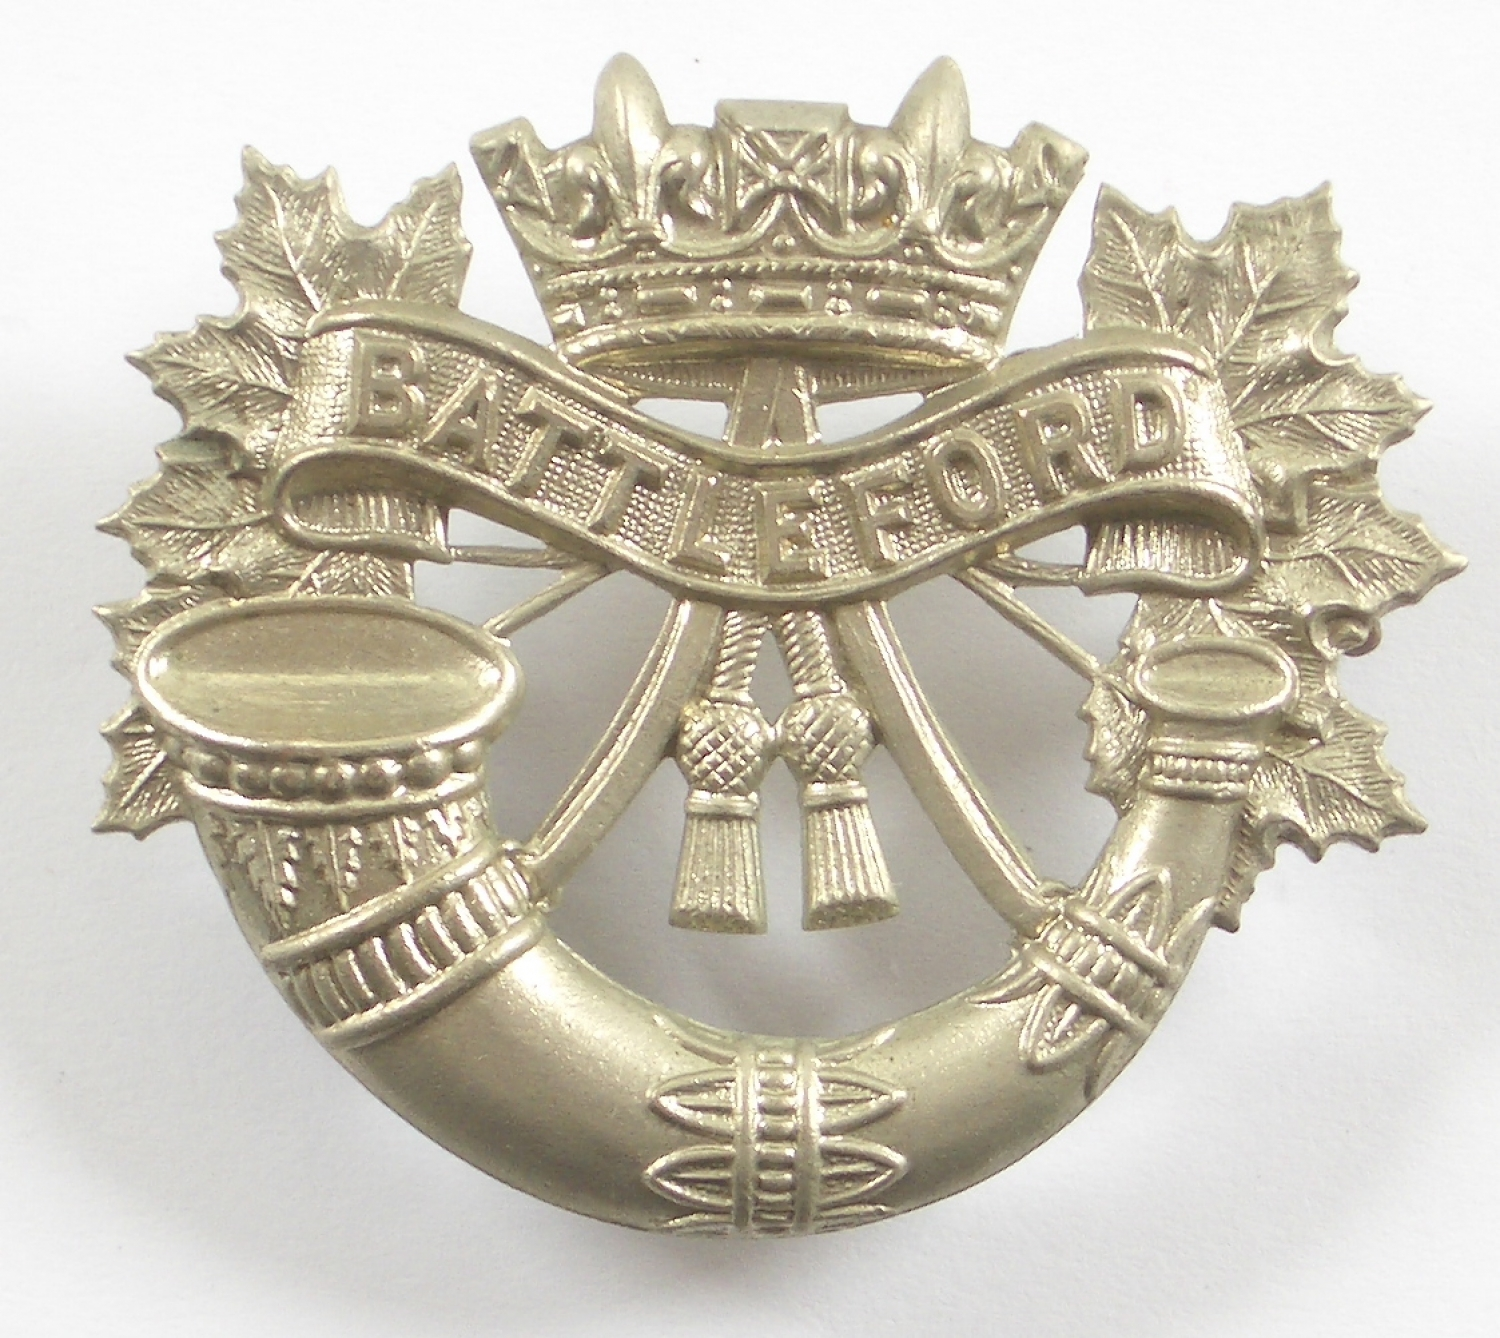 Canadian Battleford Light Infantry cap badge